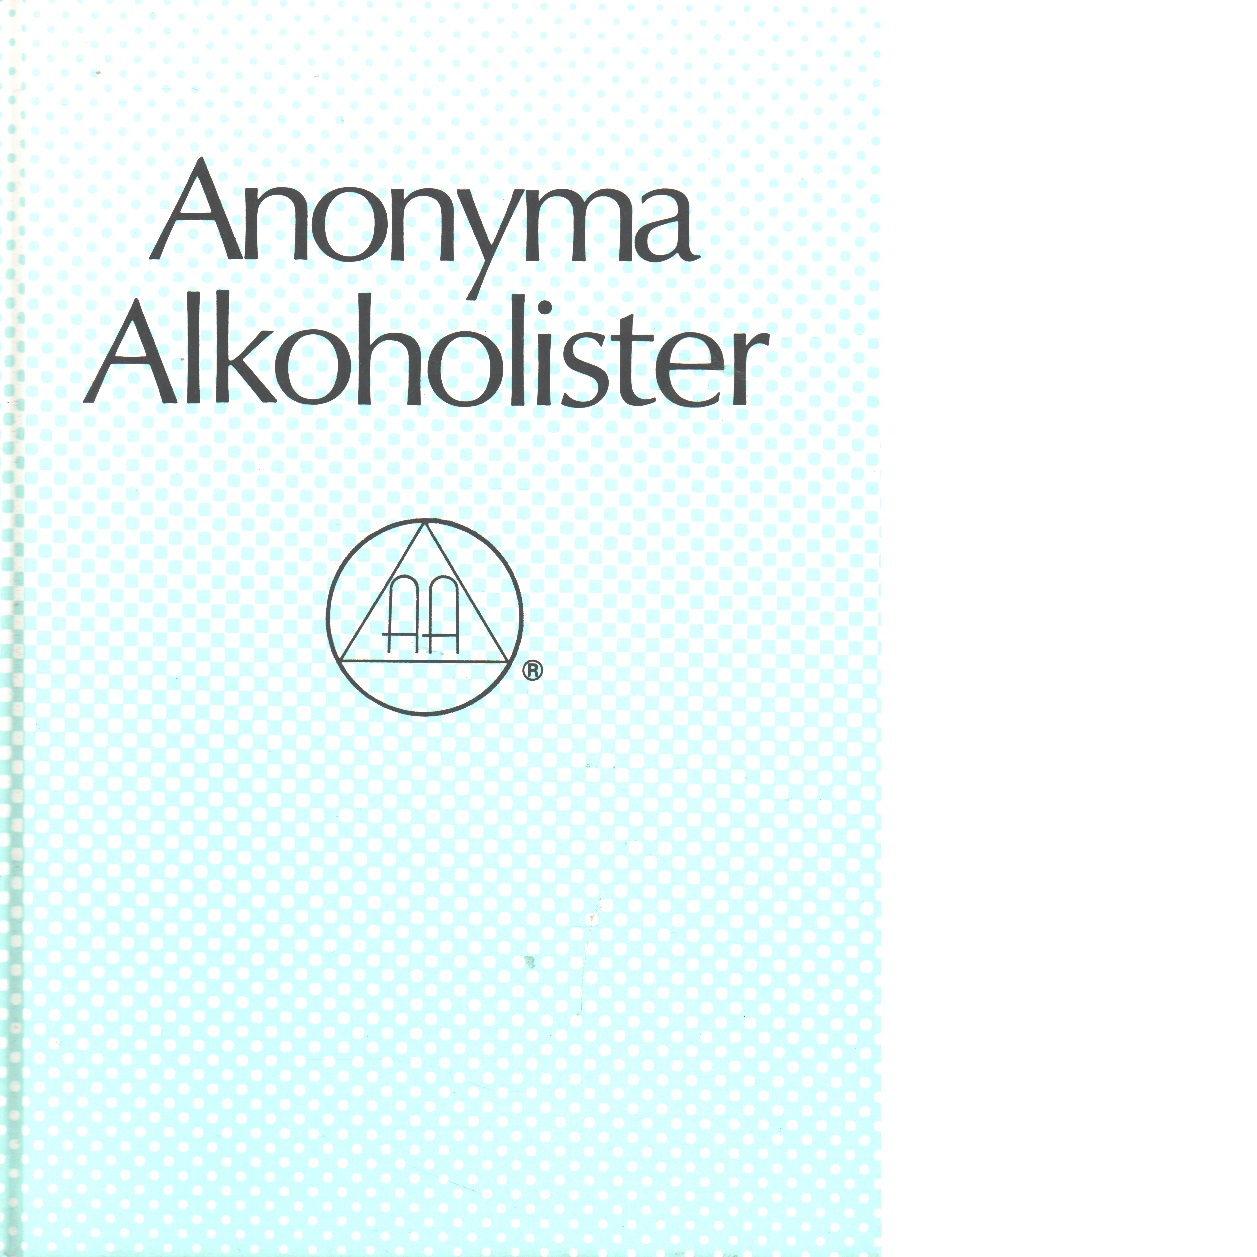 Anonyma alkoholister - Red.